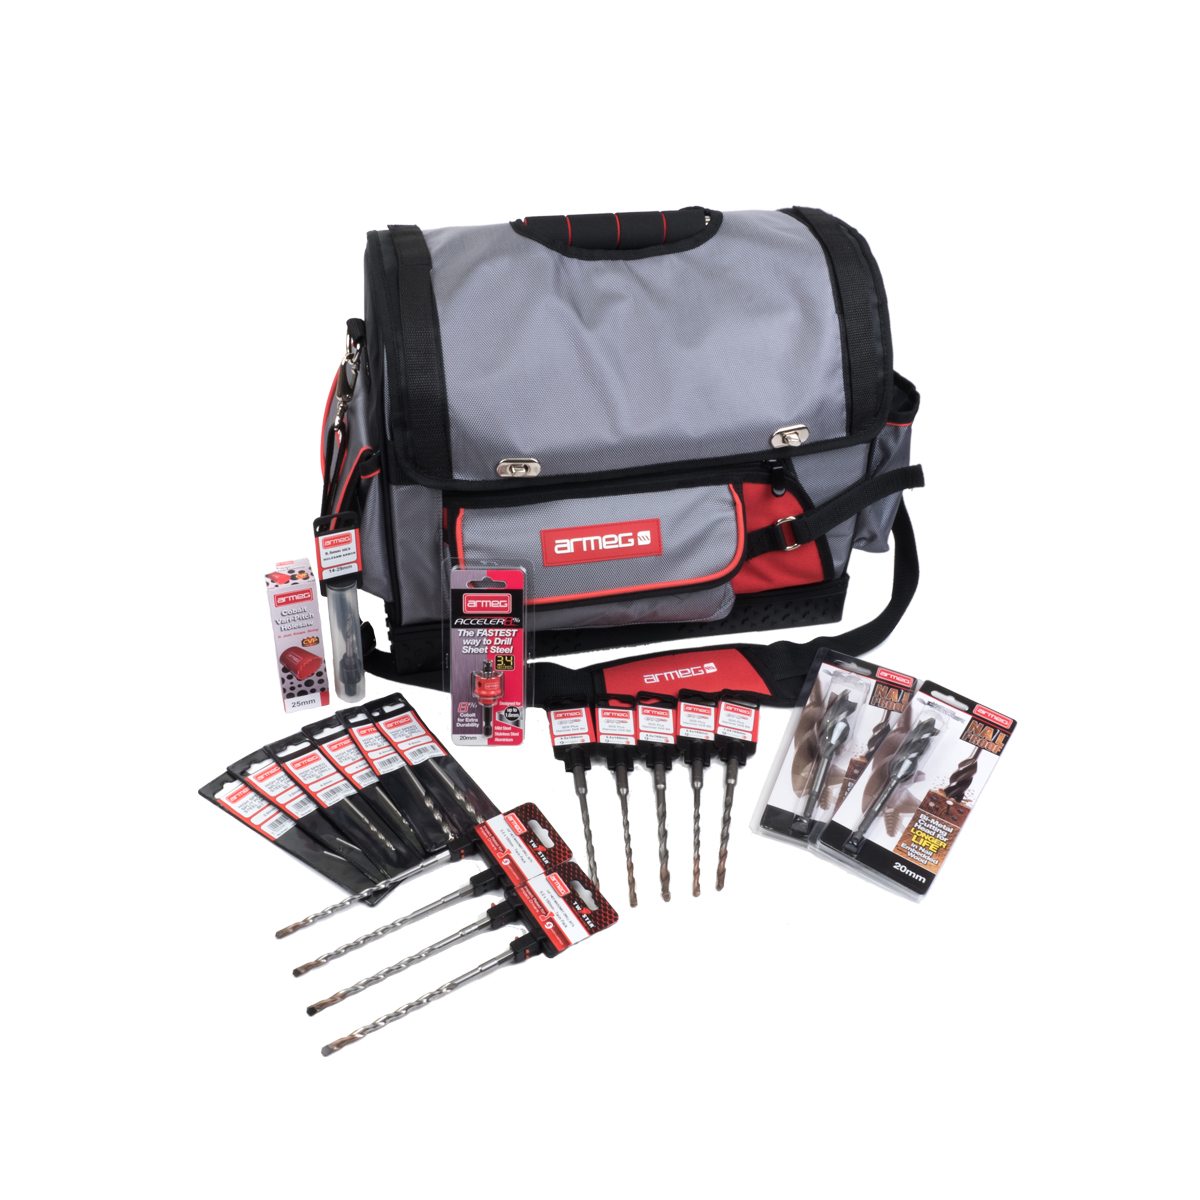 20 Piece Premium Drilling Kit